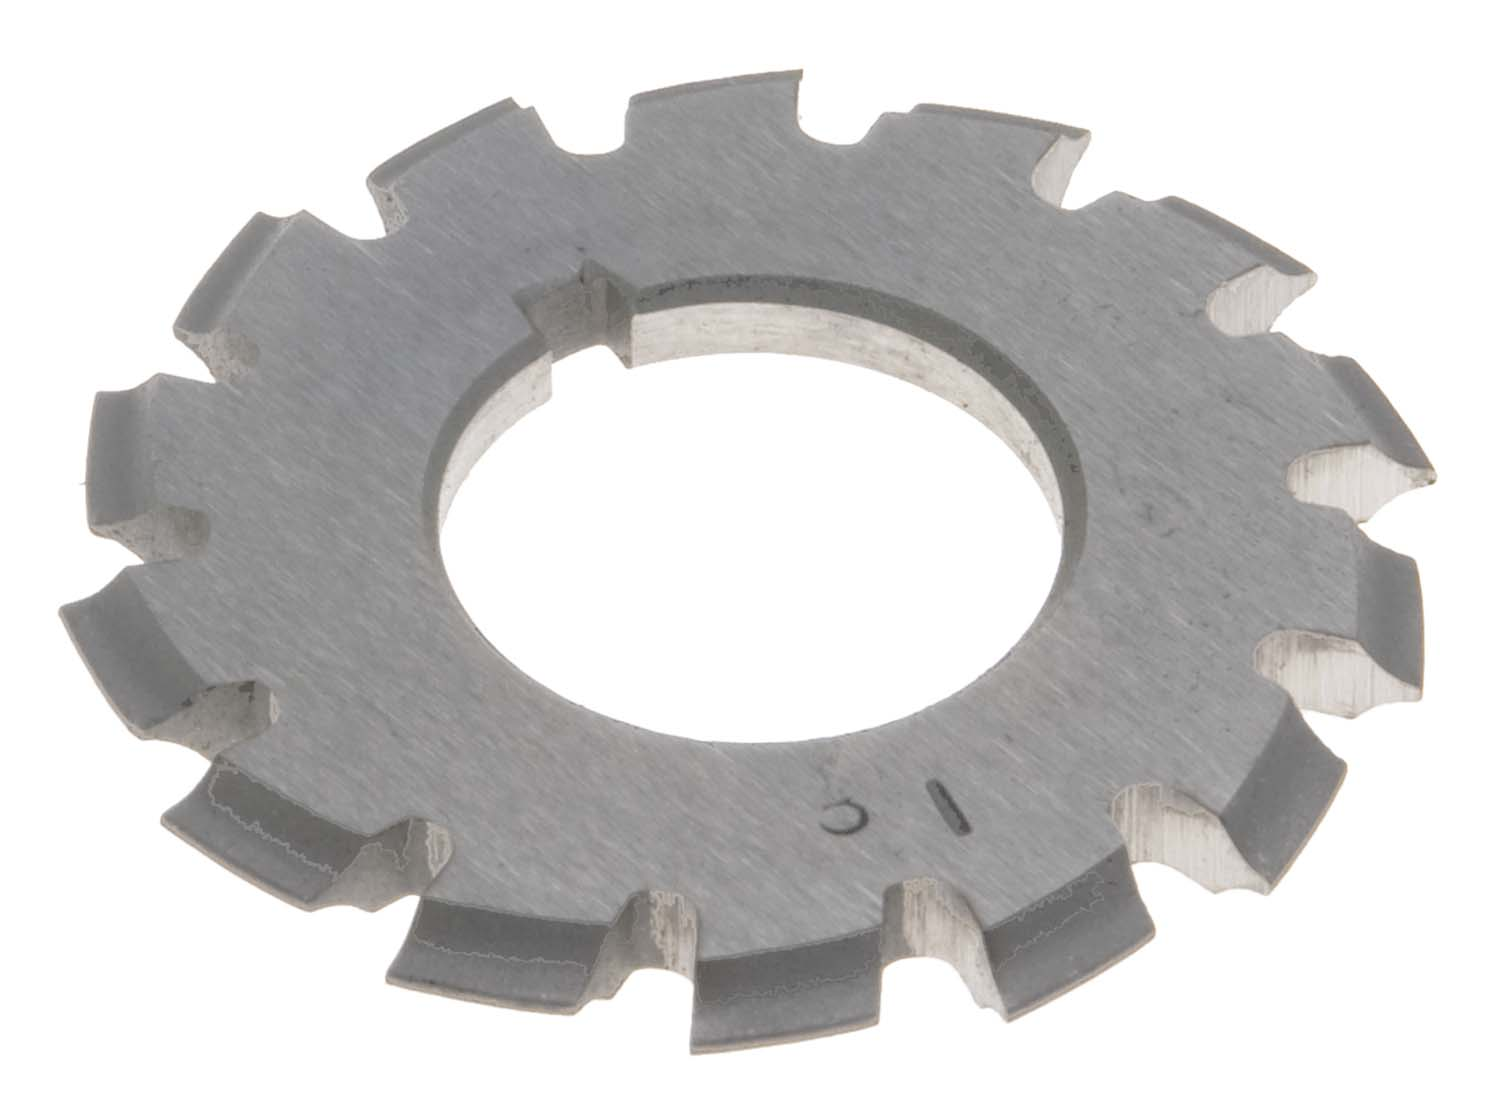 32 Diametral Pitch # 3   Involute Gear Cutter - 7/8 ID - 14-1/2 Degree Pressure Angle